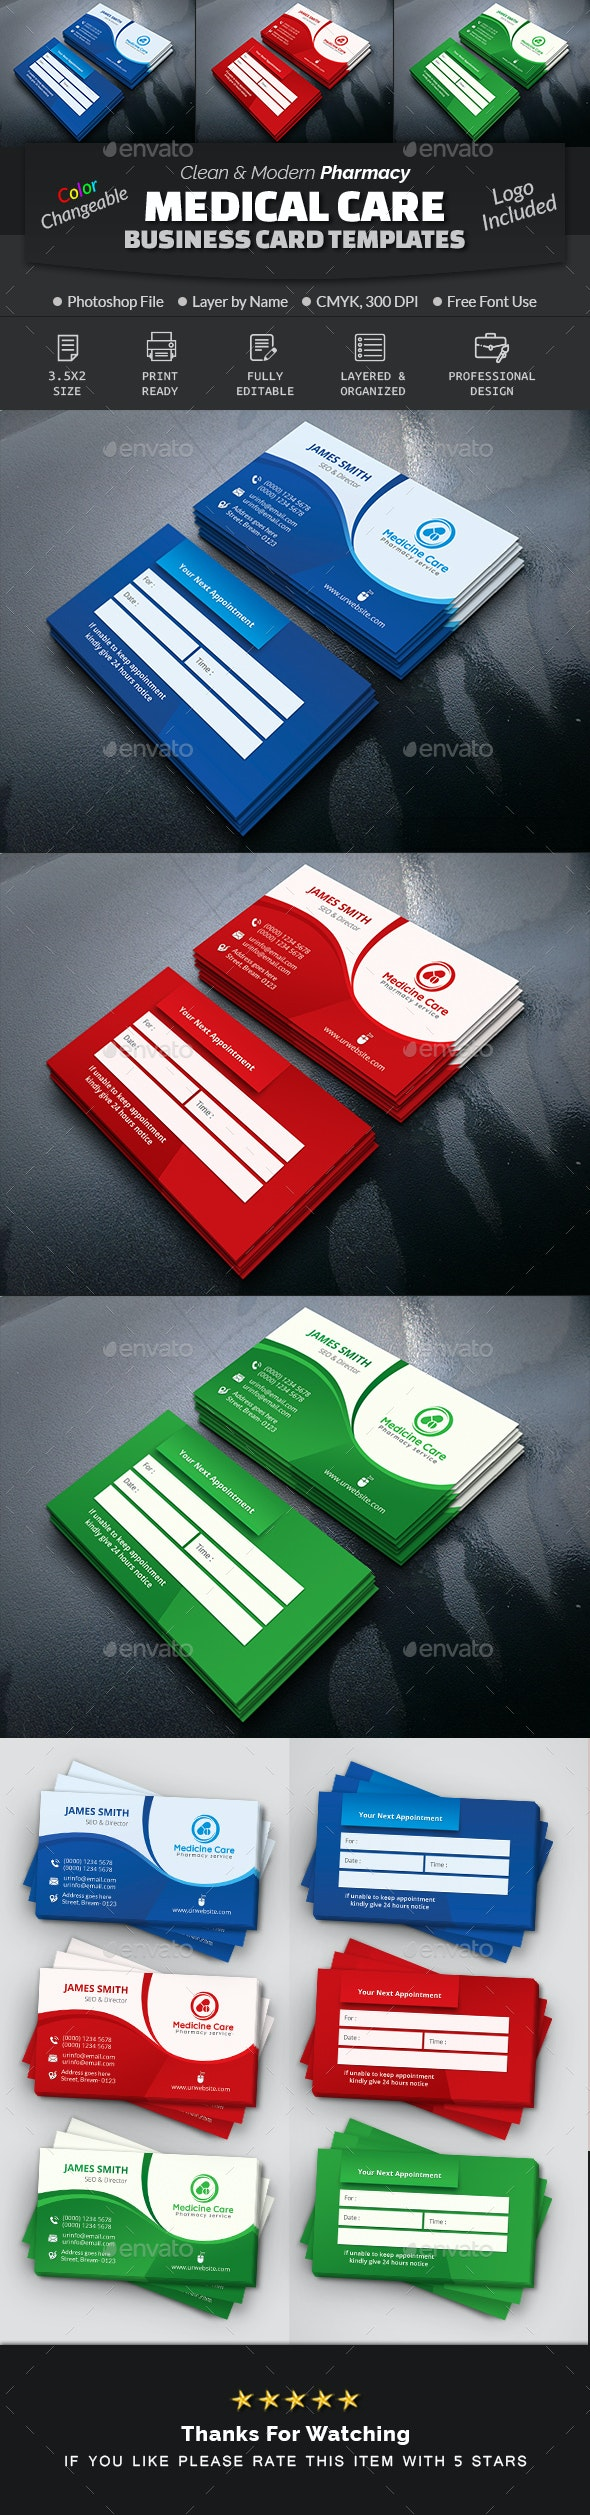 Medical Care Pharmacy Business Card - Industry Specific Business Cards